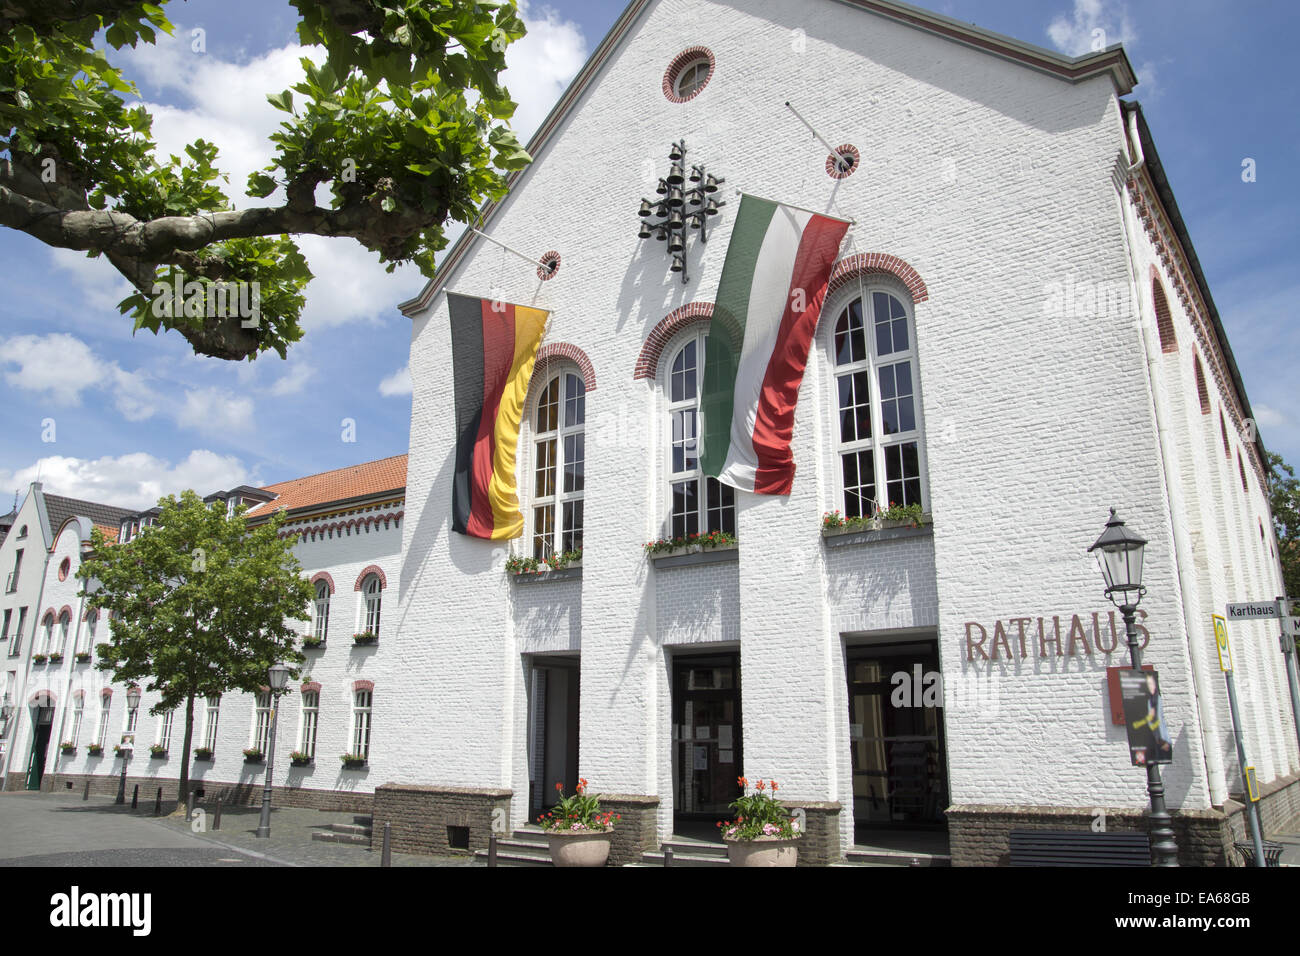 Town hall in Xanten, Germany Stock Photo